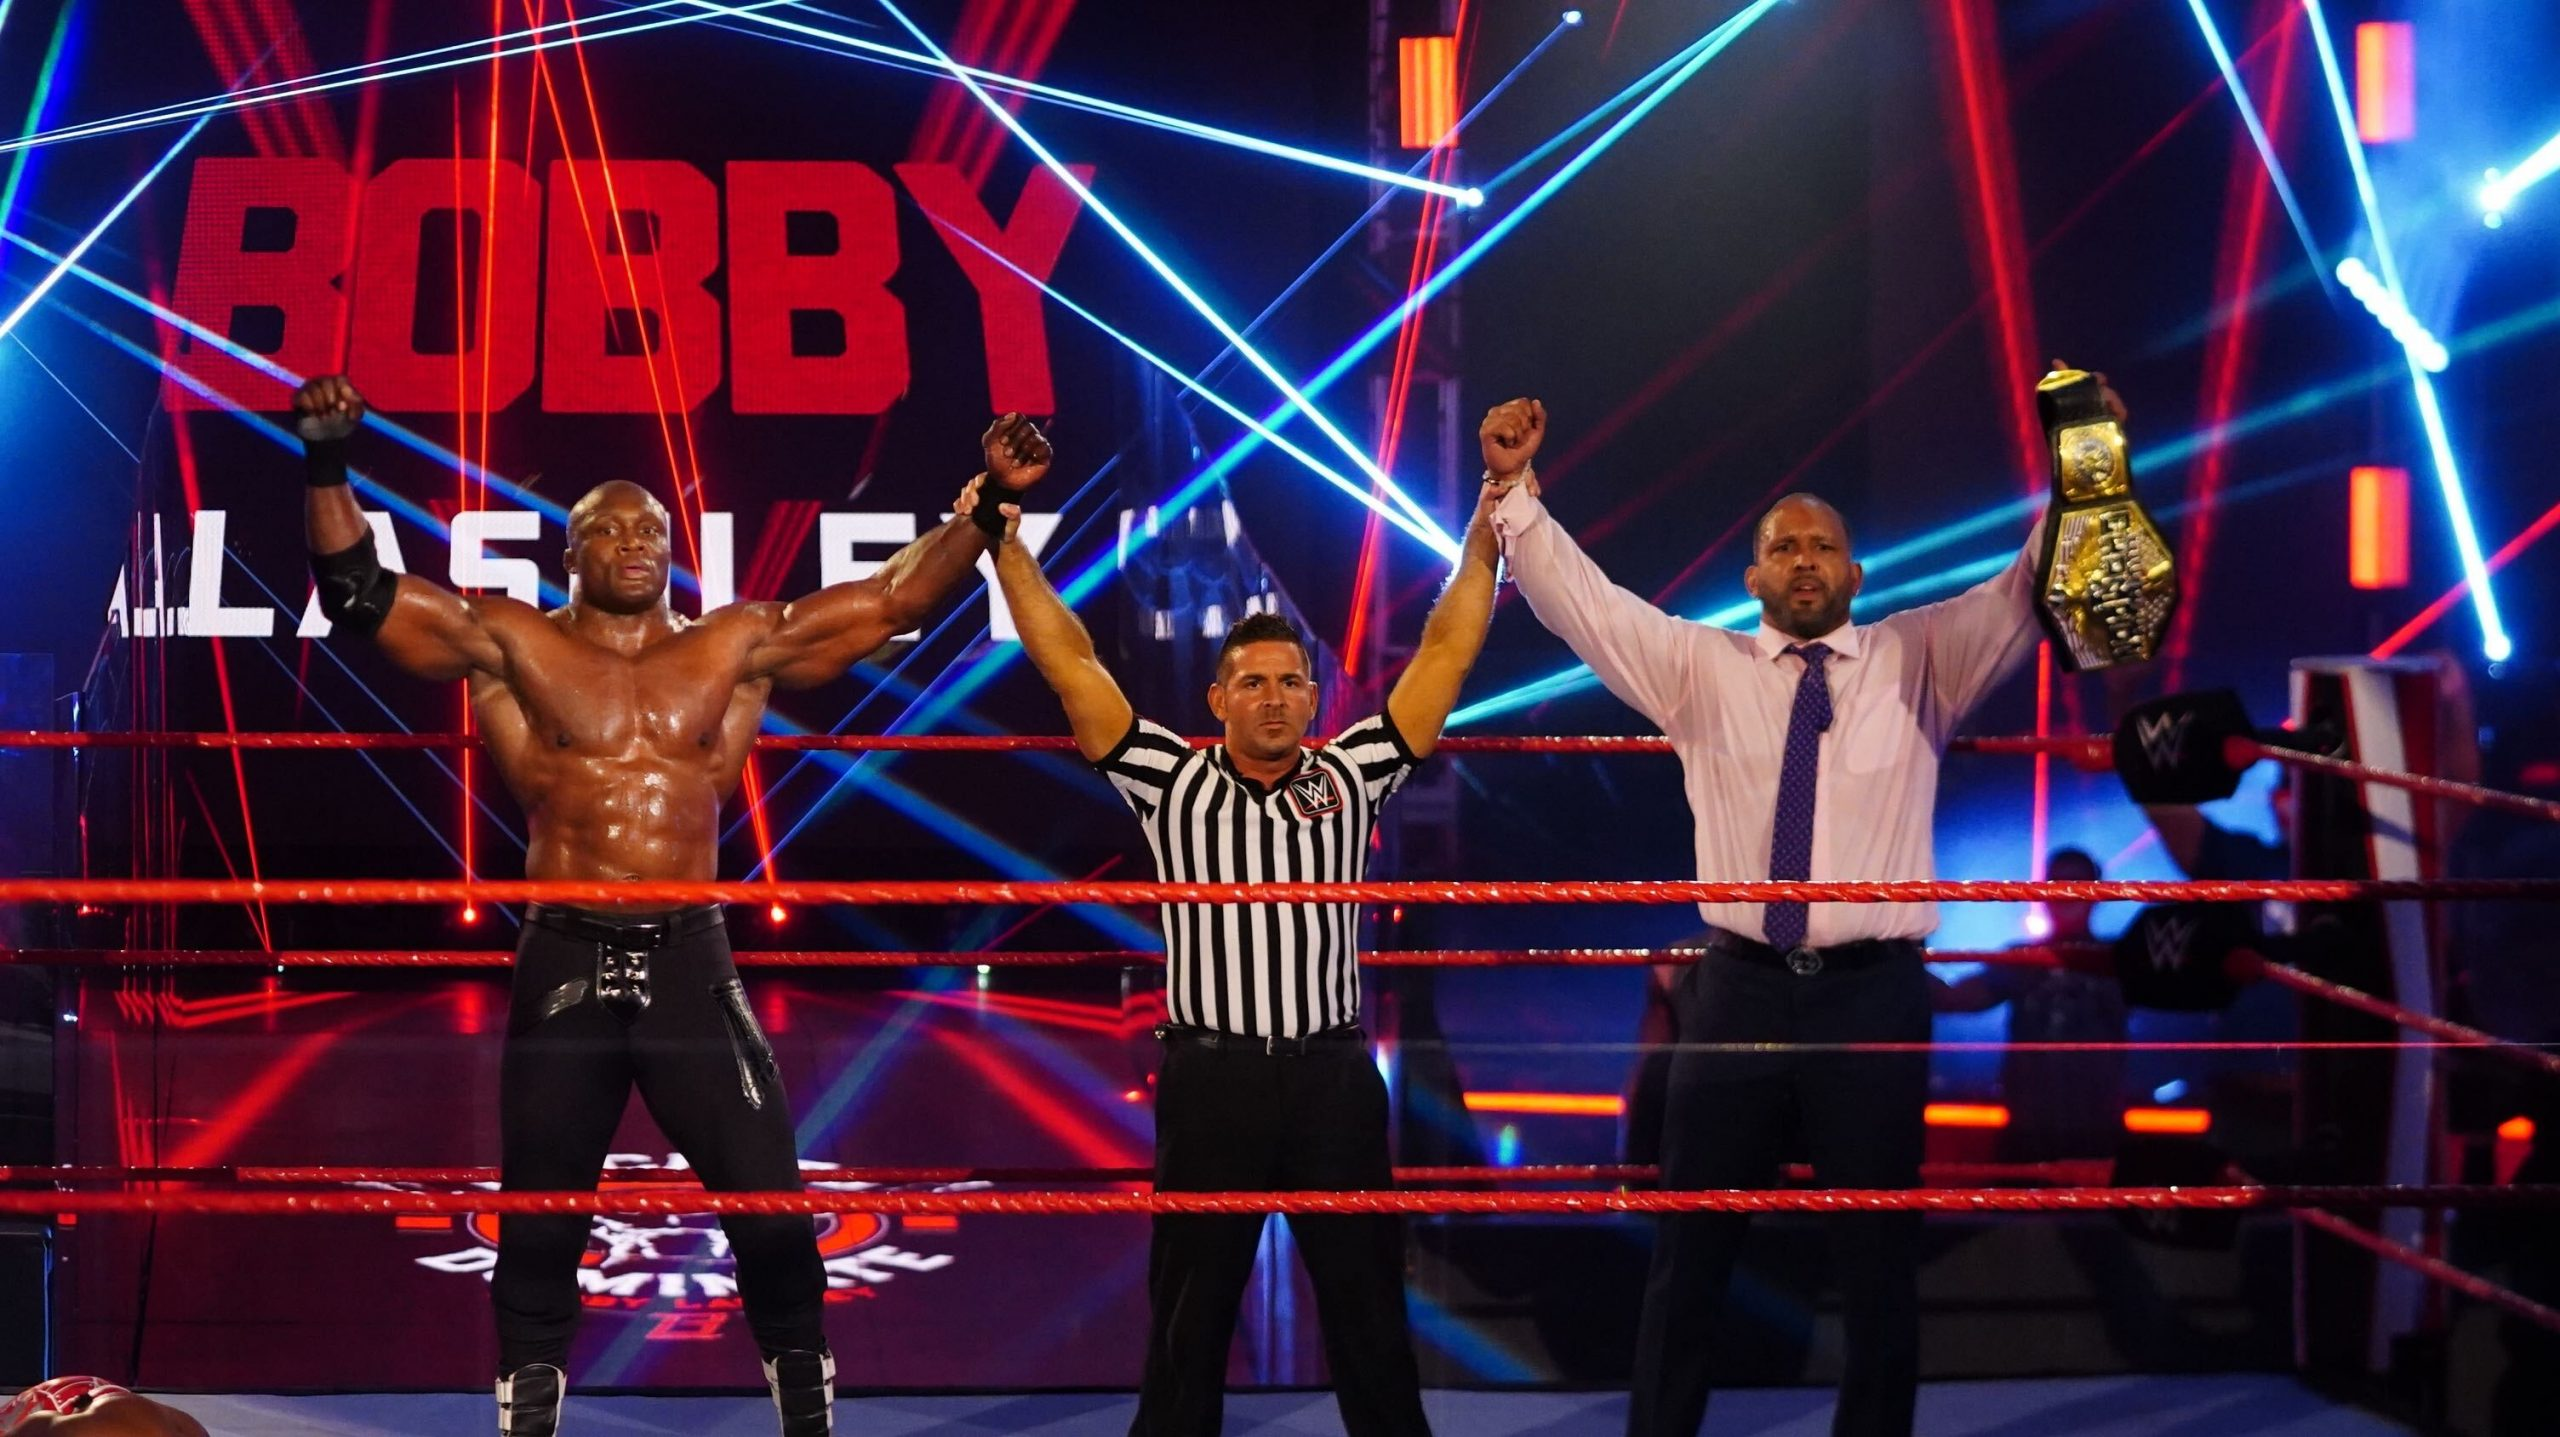 MVP and Lashley picked up another win